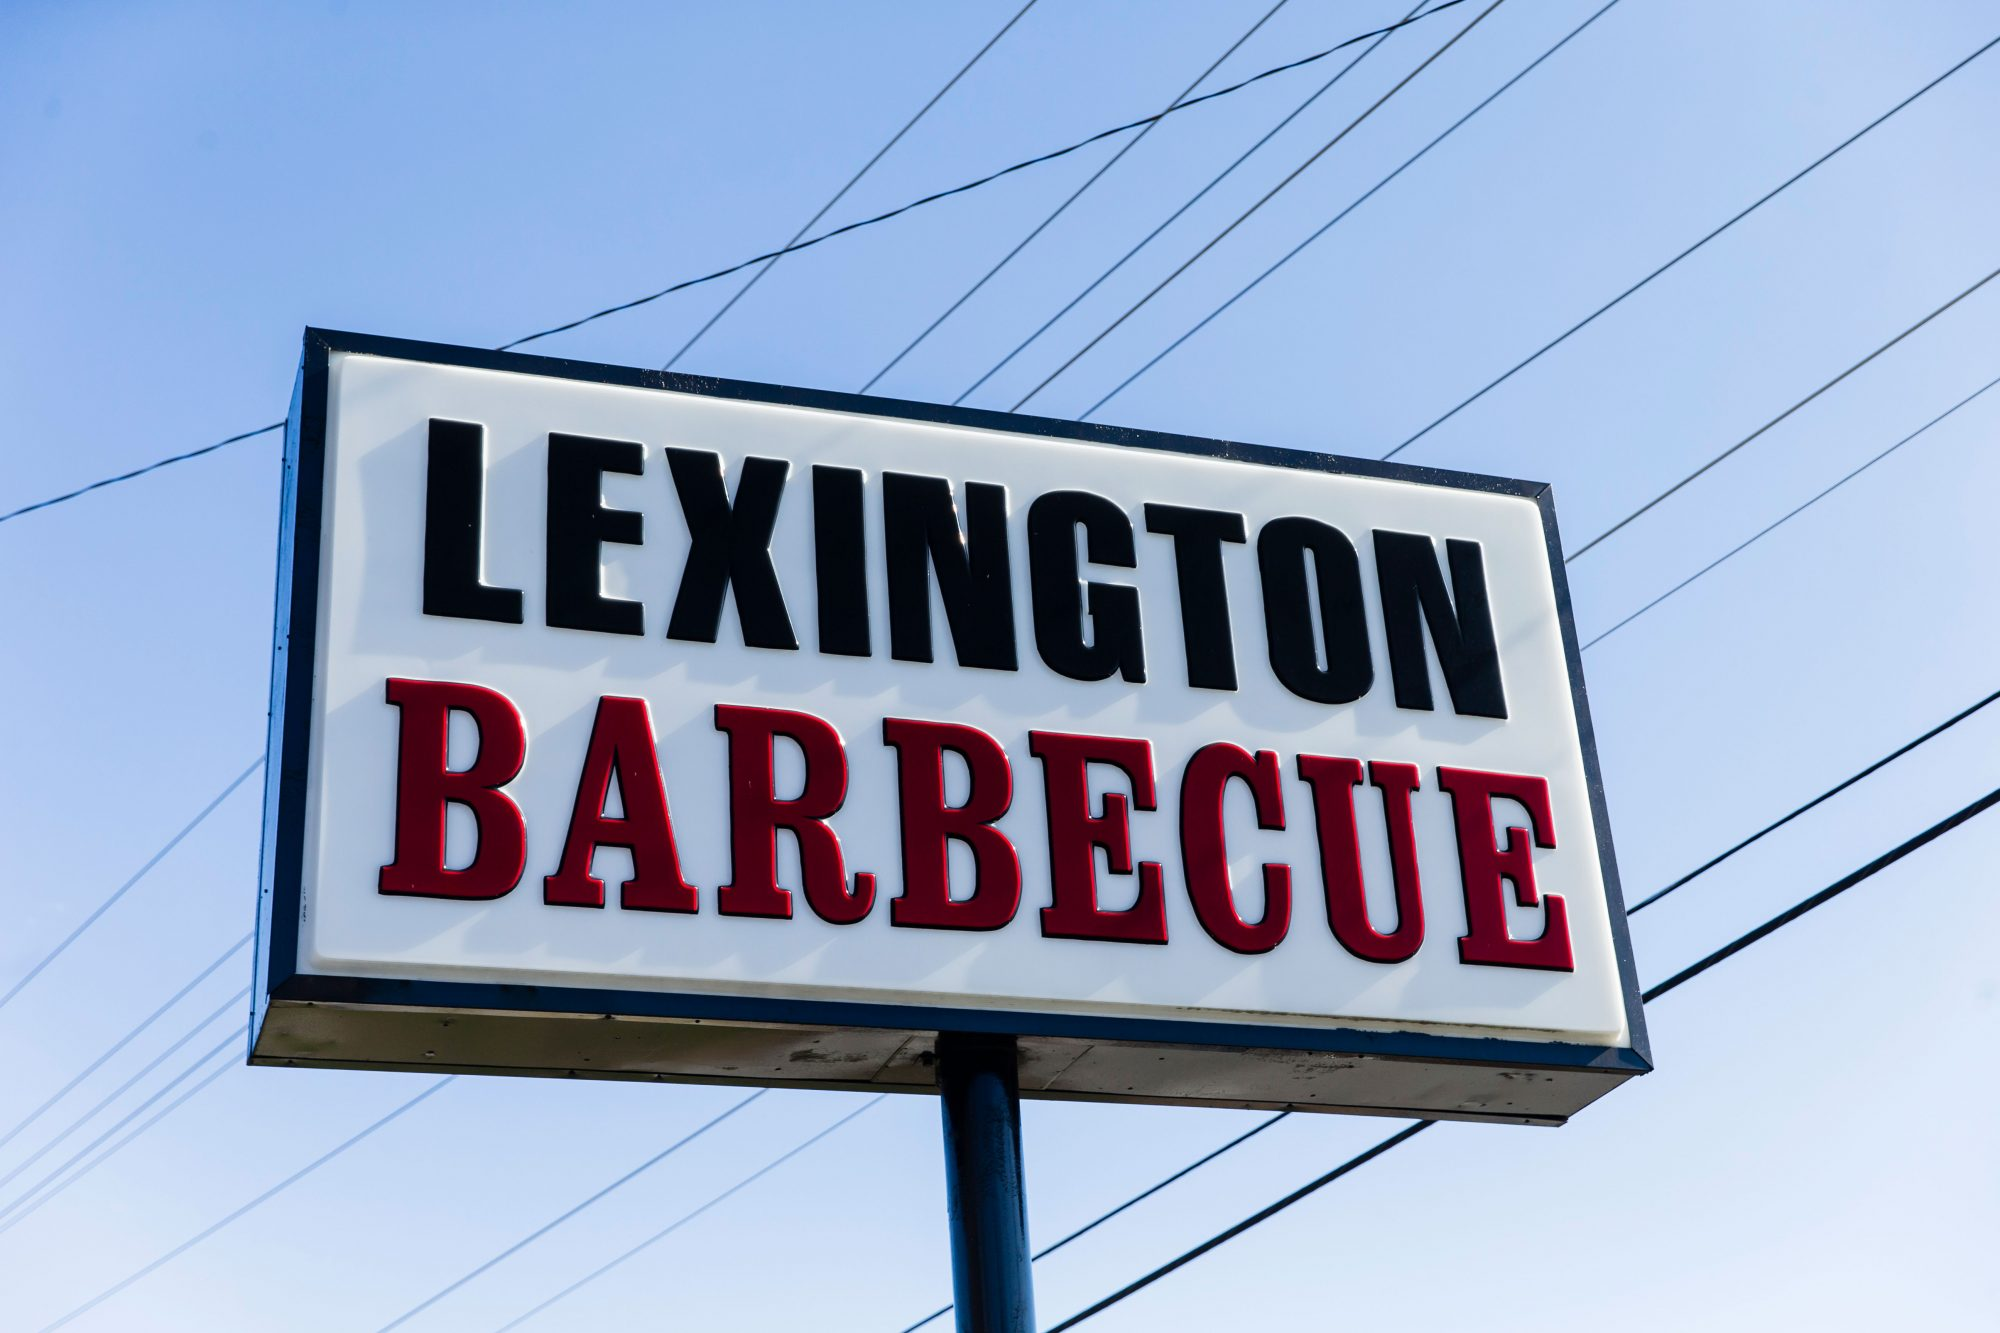 Lexington Barbecue Sign in Lexington, NC